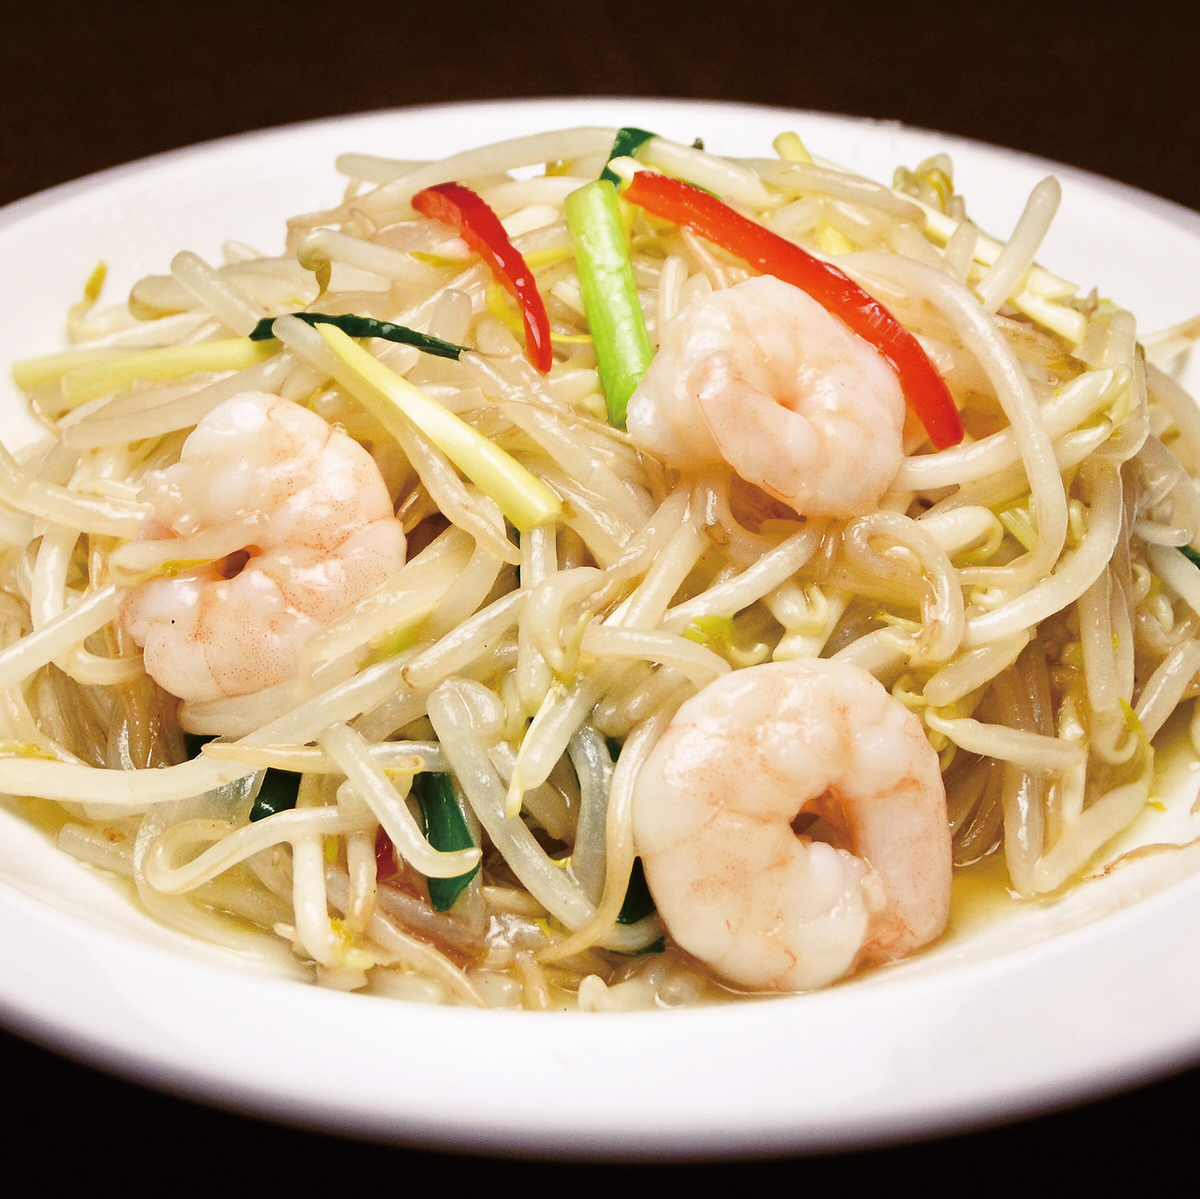 Stir-fried shrimp with yellow chives and sprouts of bean sprouts